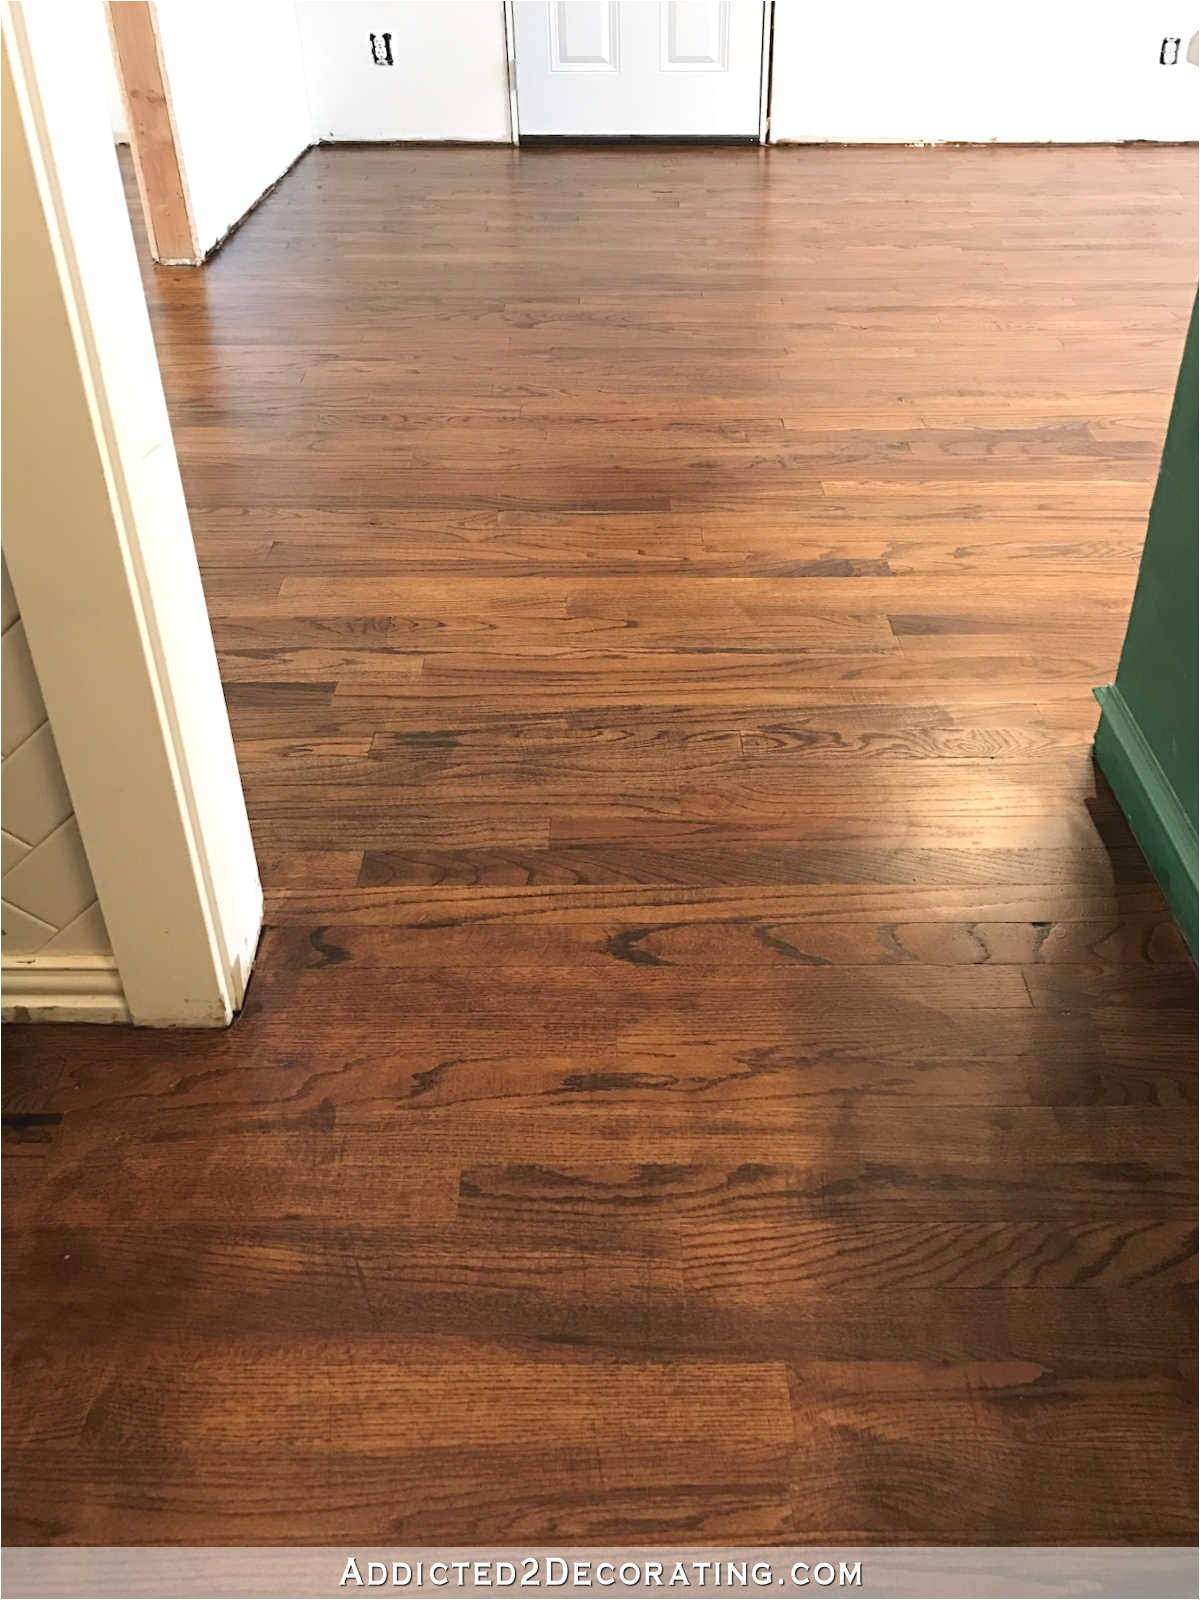 waterproof hardwood flooring of dog shoes hardwood floors dog pee hardwood floors gorgeous my newly in dog shoes hardwood floors dog pee hardwood floors gorgeous my newly refinished red oak